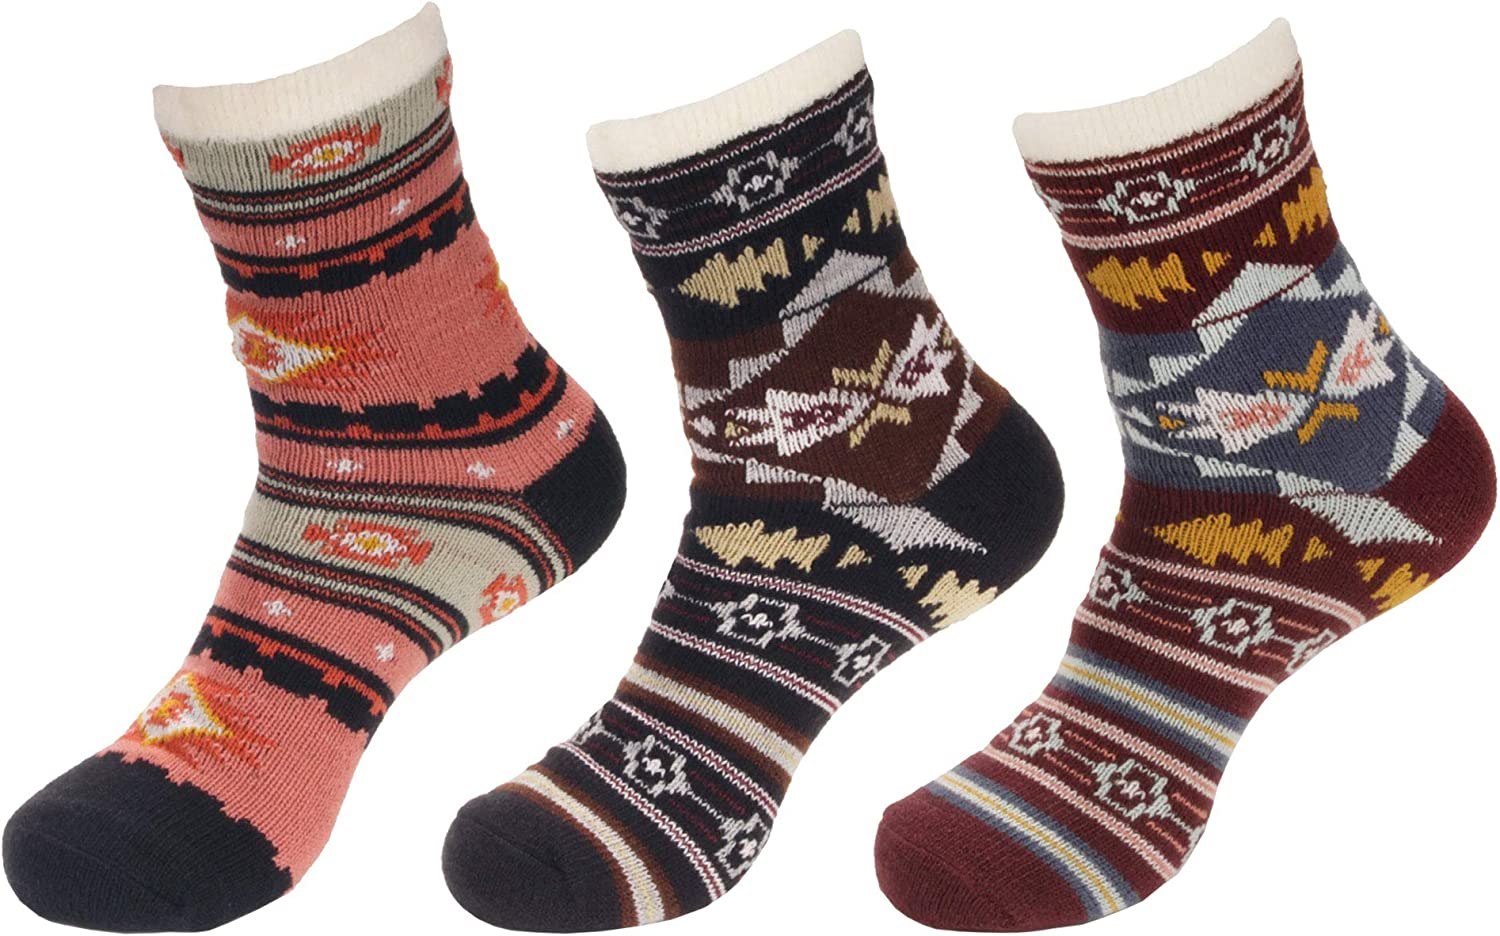 BambooMN Men's Cabin Double Layer Thick Soft Warm Fuzzy Comfy Home Socks, 3 Pairs